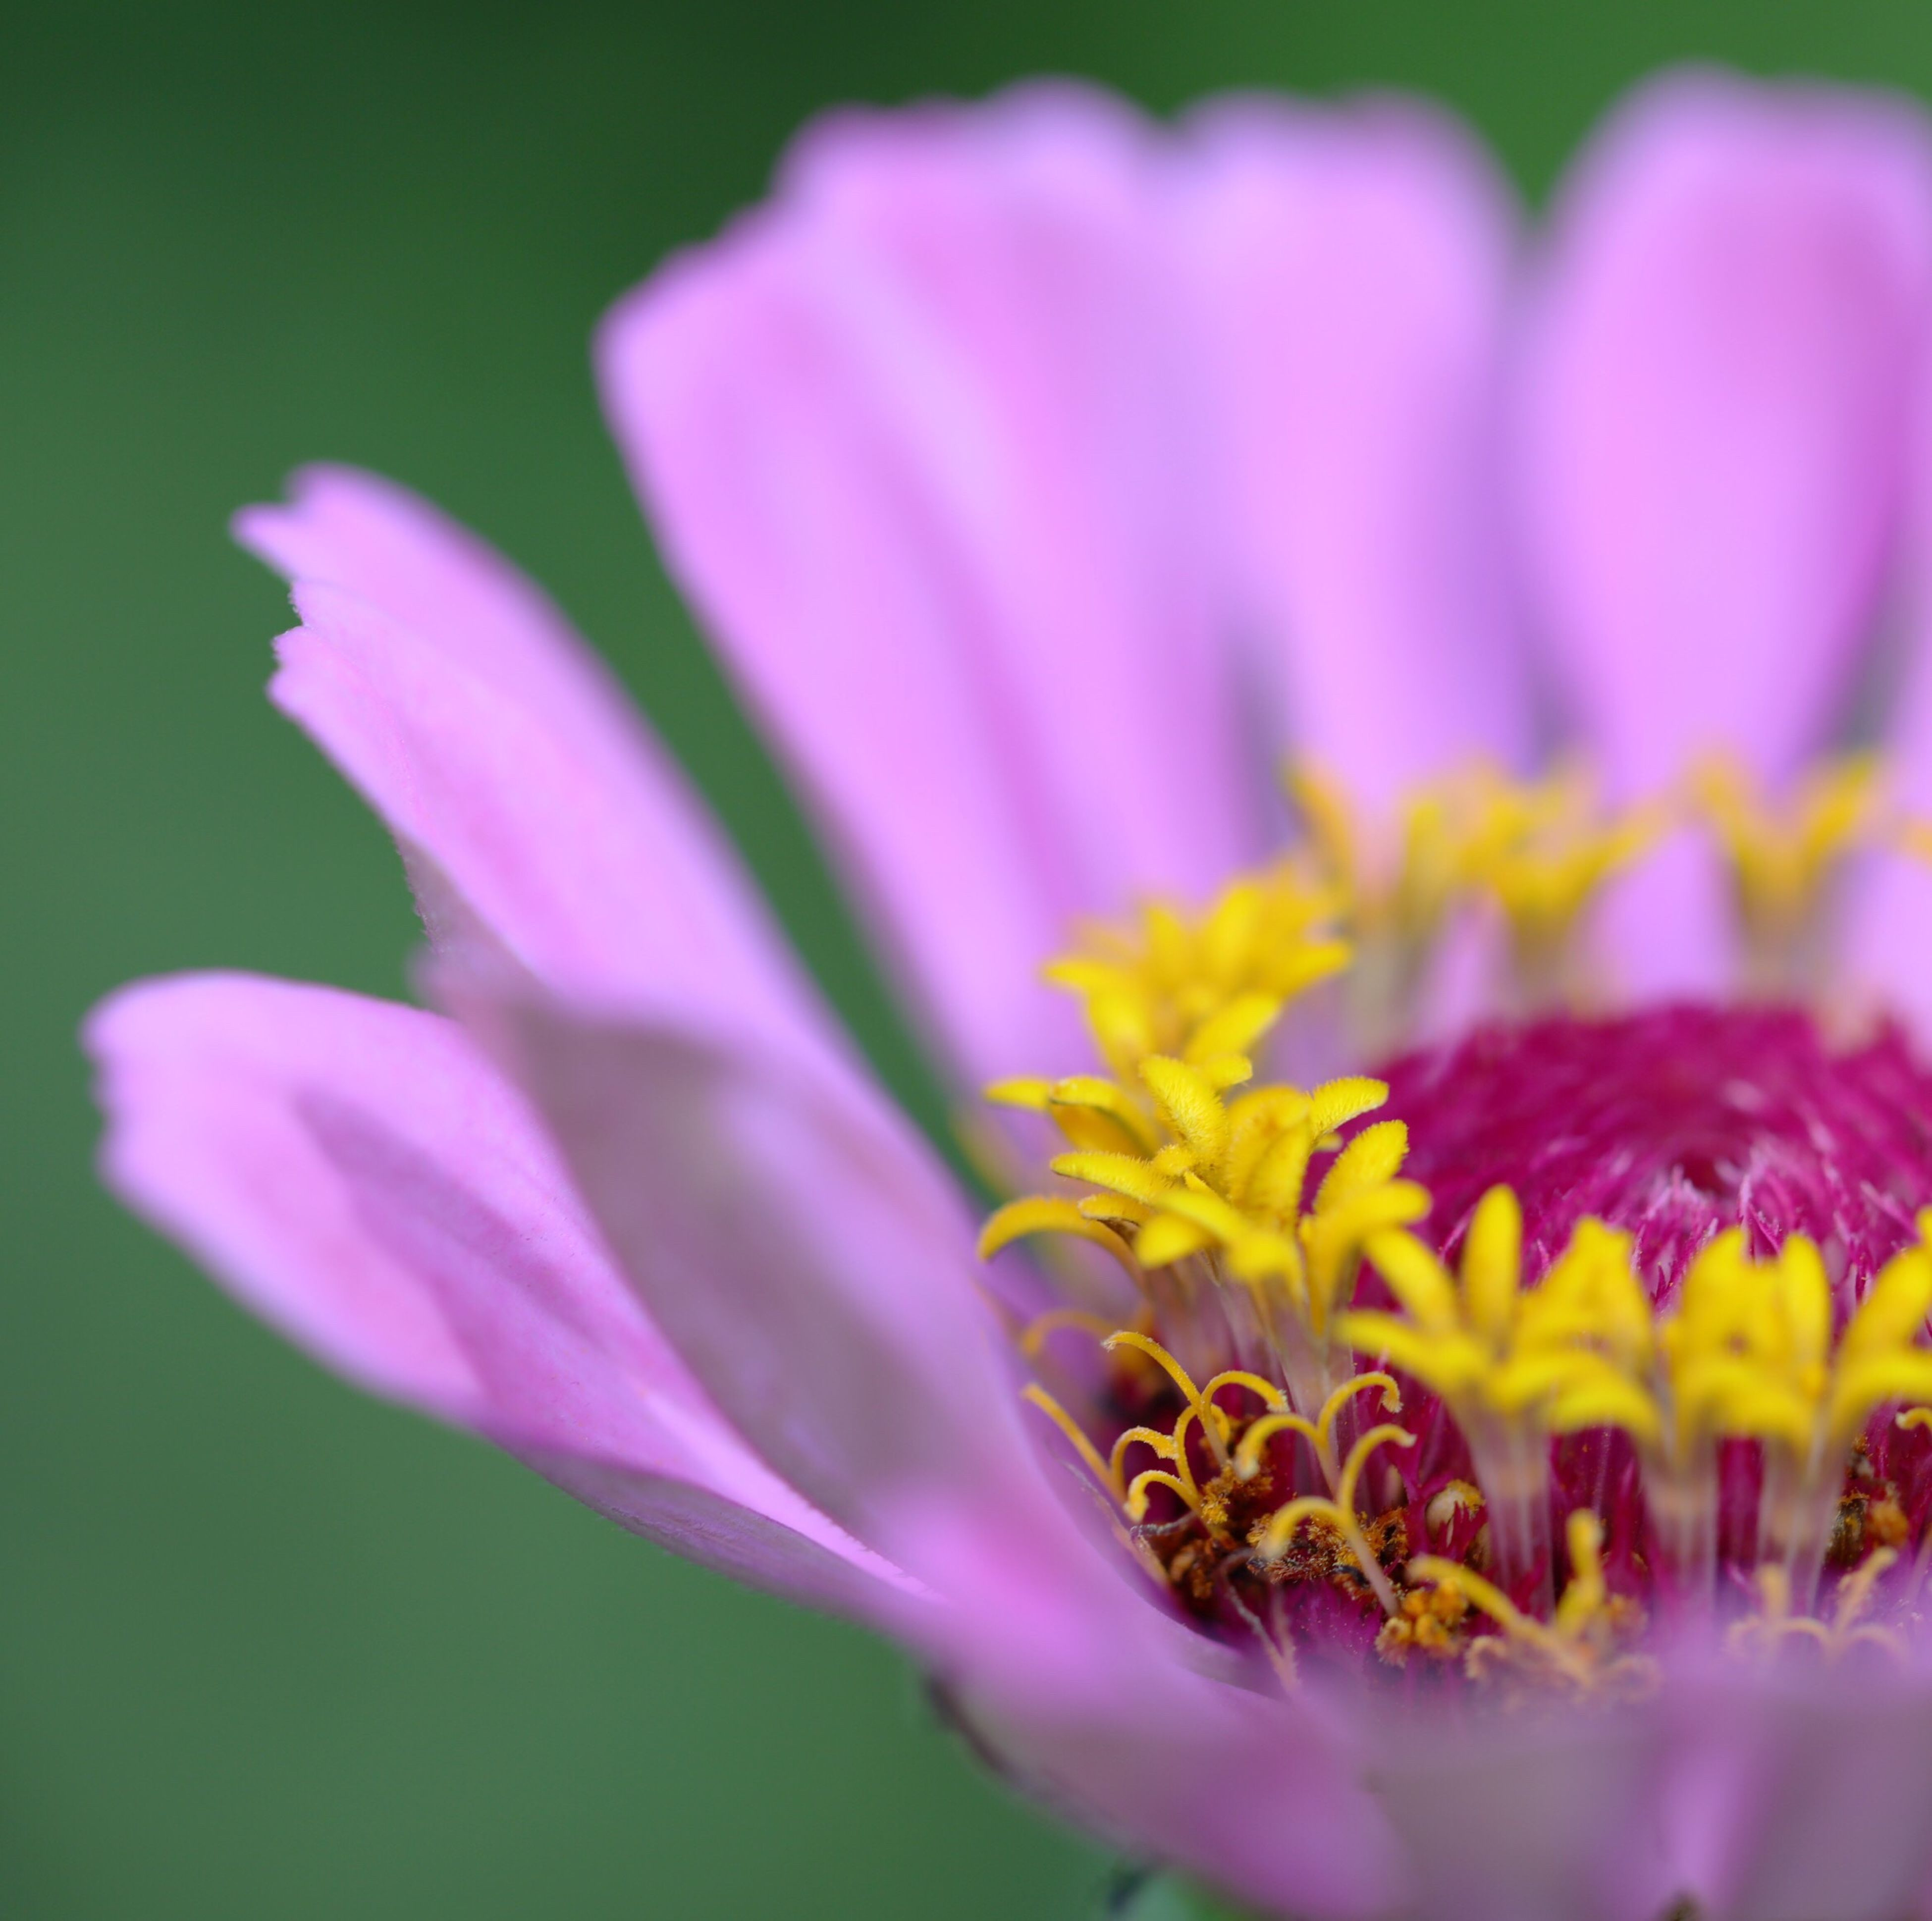 flower, petal, freshness, fragility, flower head, beauty in nature, pink color, growth, close-up, nature, selective focus, focus on foreground, blooming, yellow, plant, in bloom, pollen, purple, blossom, outdoors, no people, day, botany, stamen, macro, softness, tranquility, detail